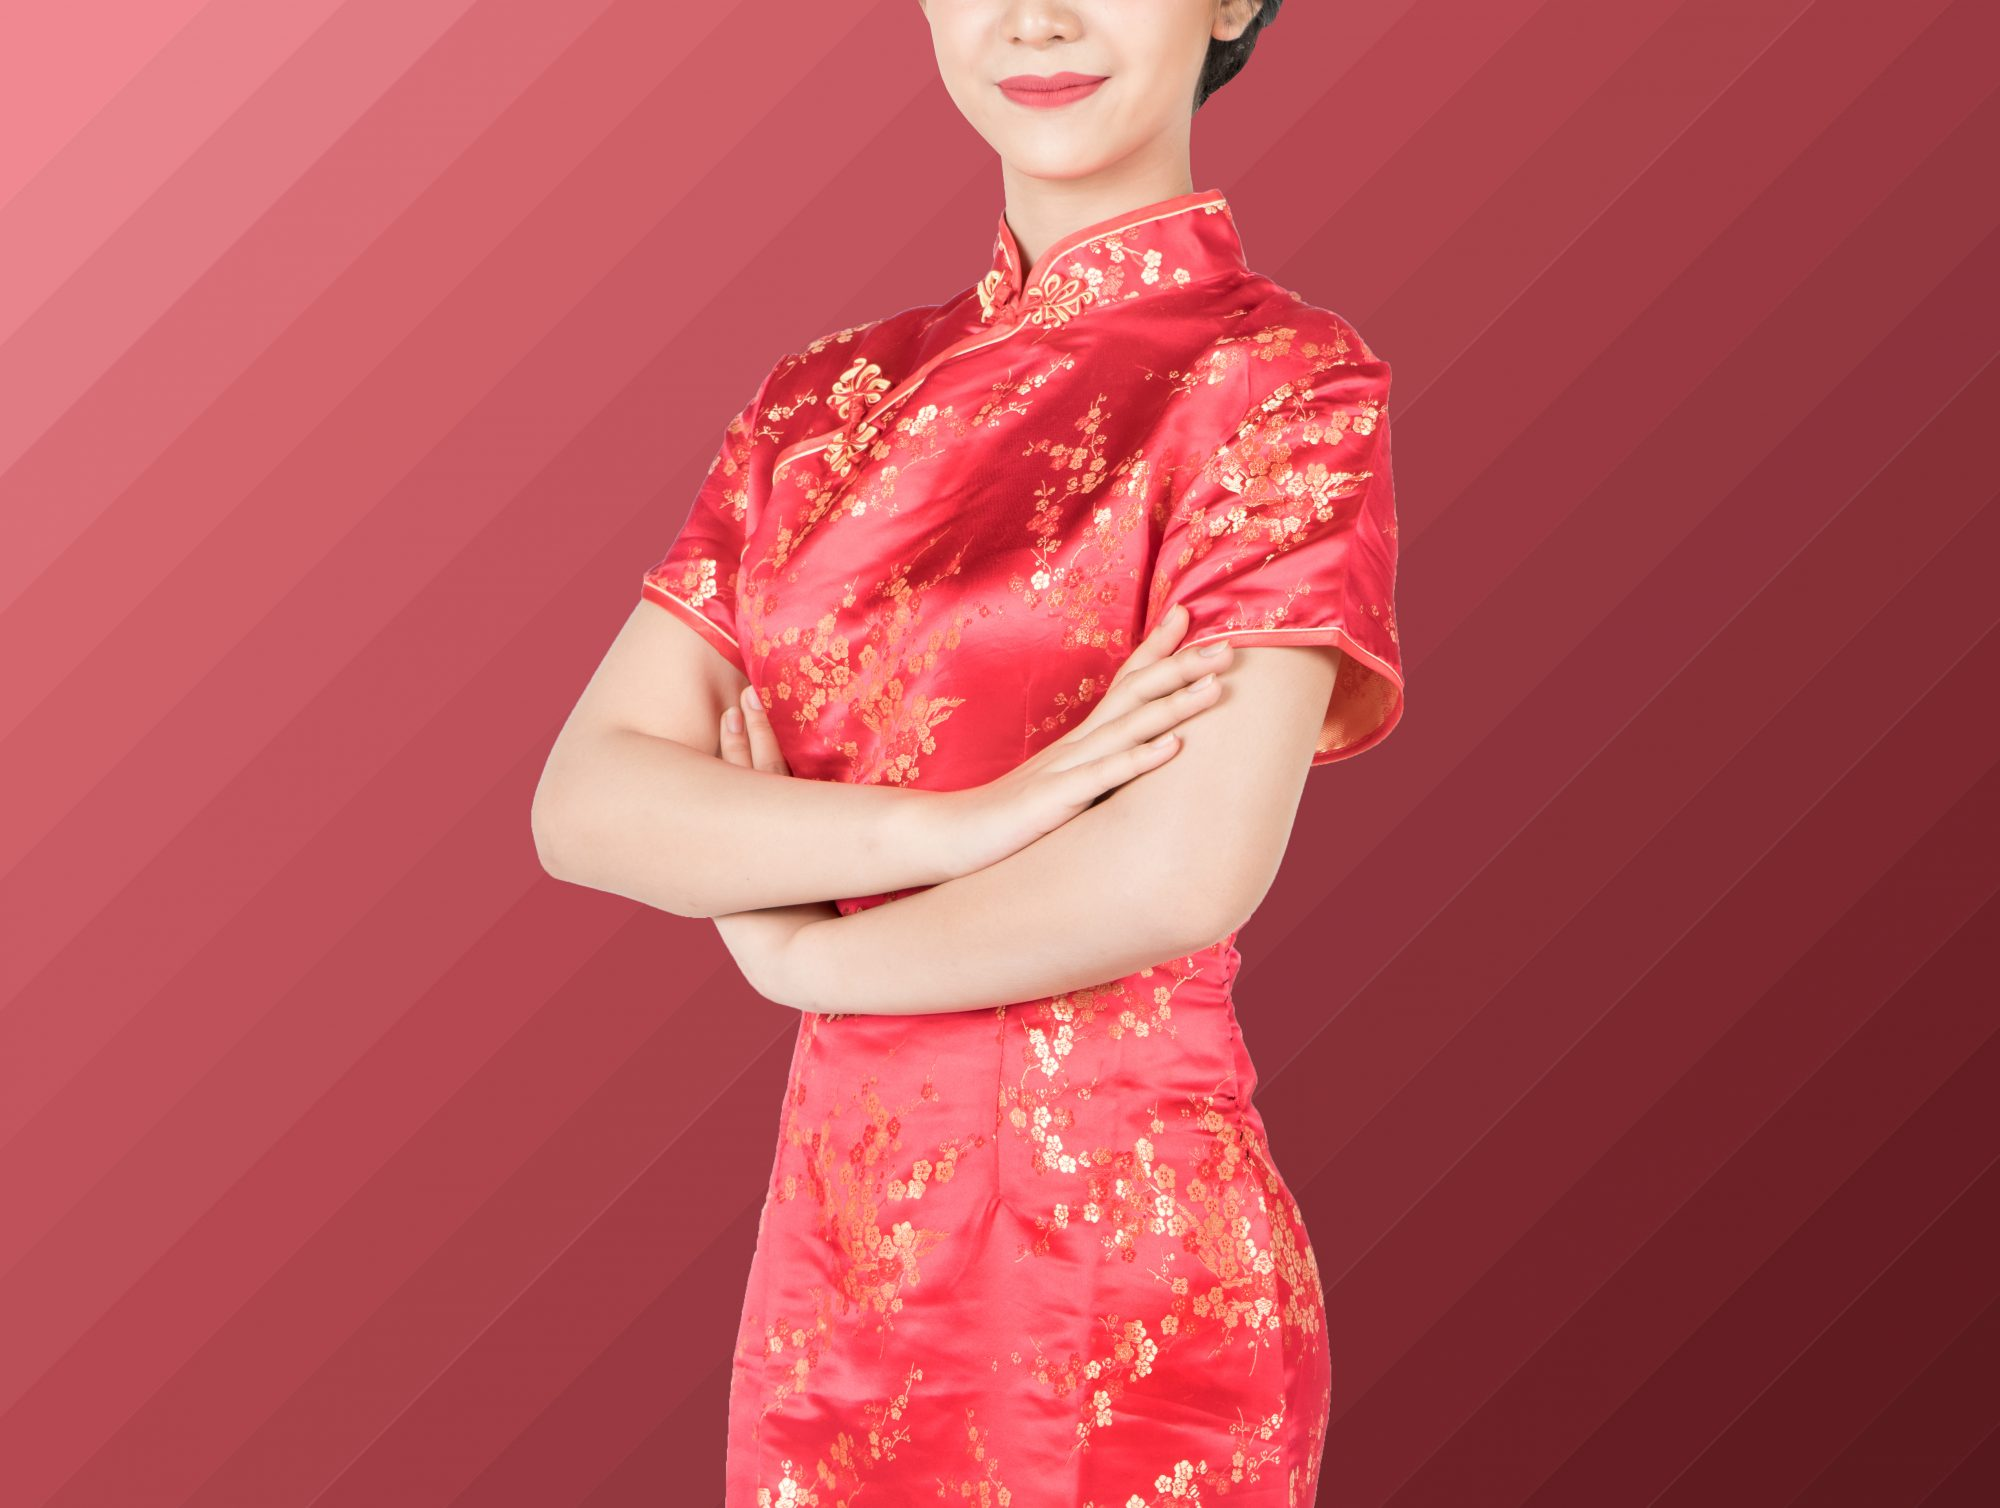 Chines woman wearing a qipao